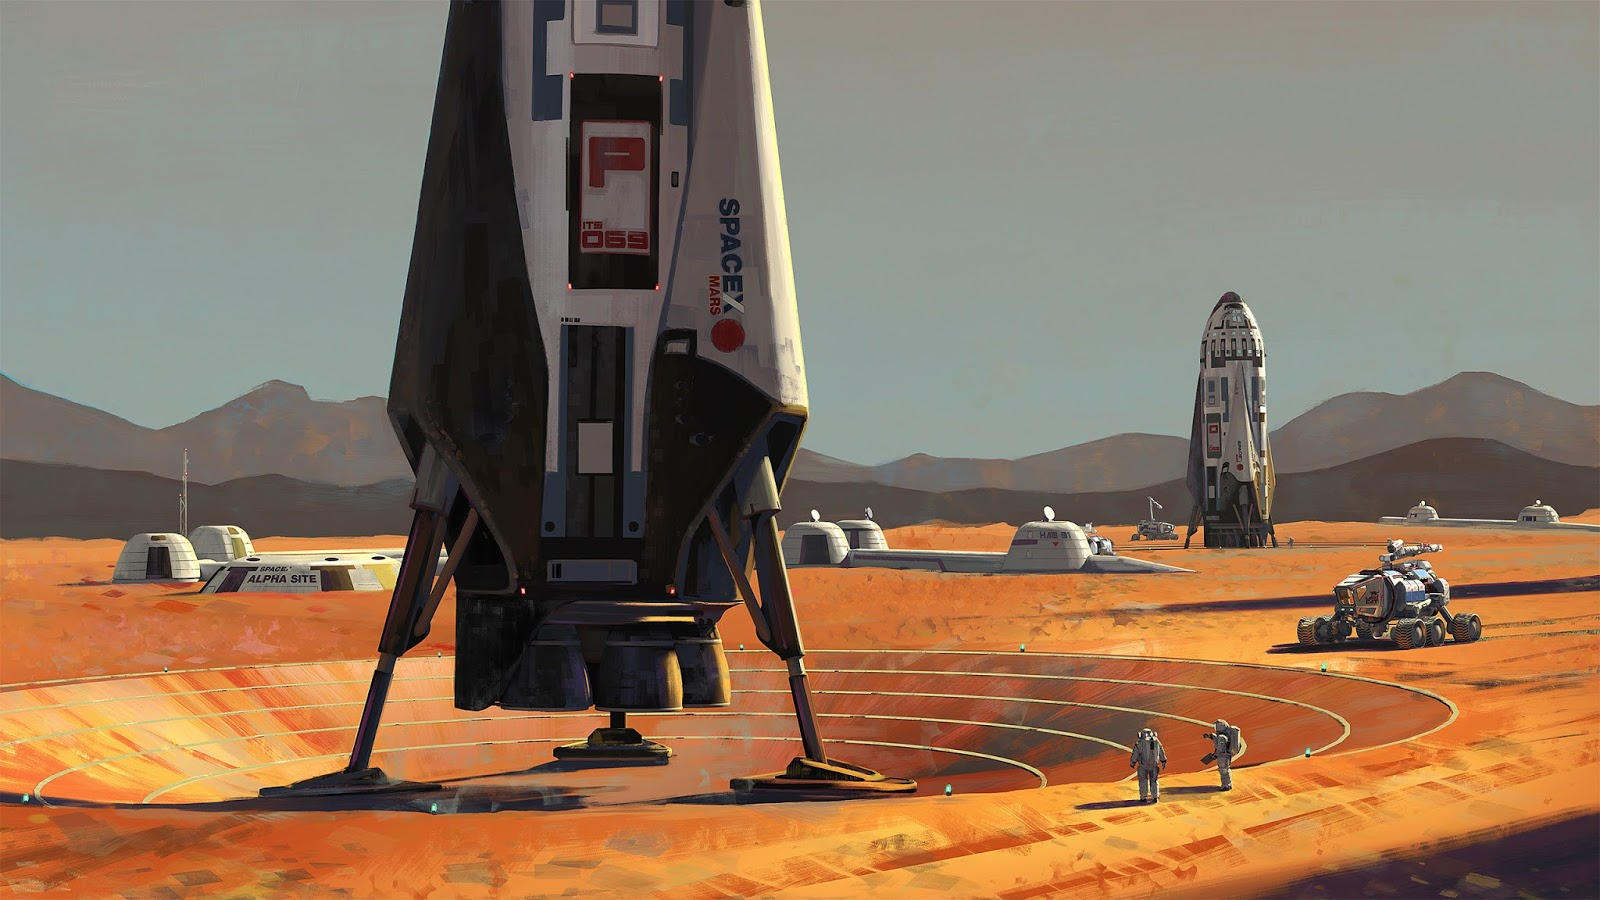 SpaceX ITS spaceships at Mars Base Alpha by Maciej Rebisz